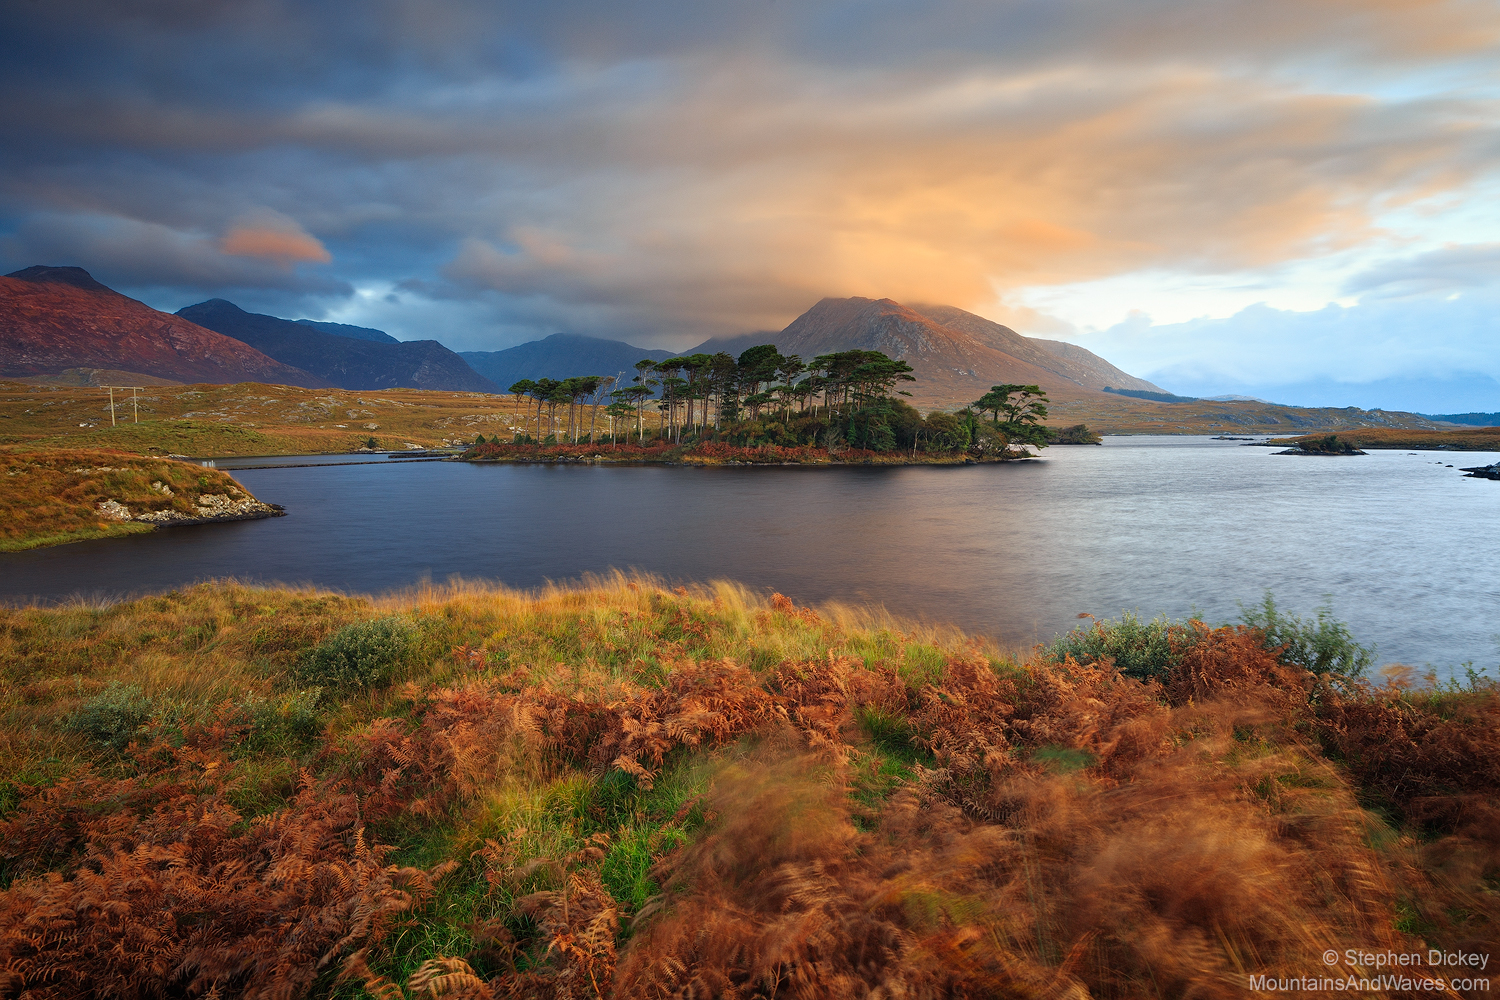 'The Twelve Pines,' Derryclare Lough, County Galway, Ireland